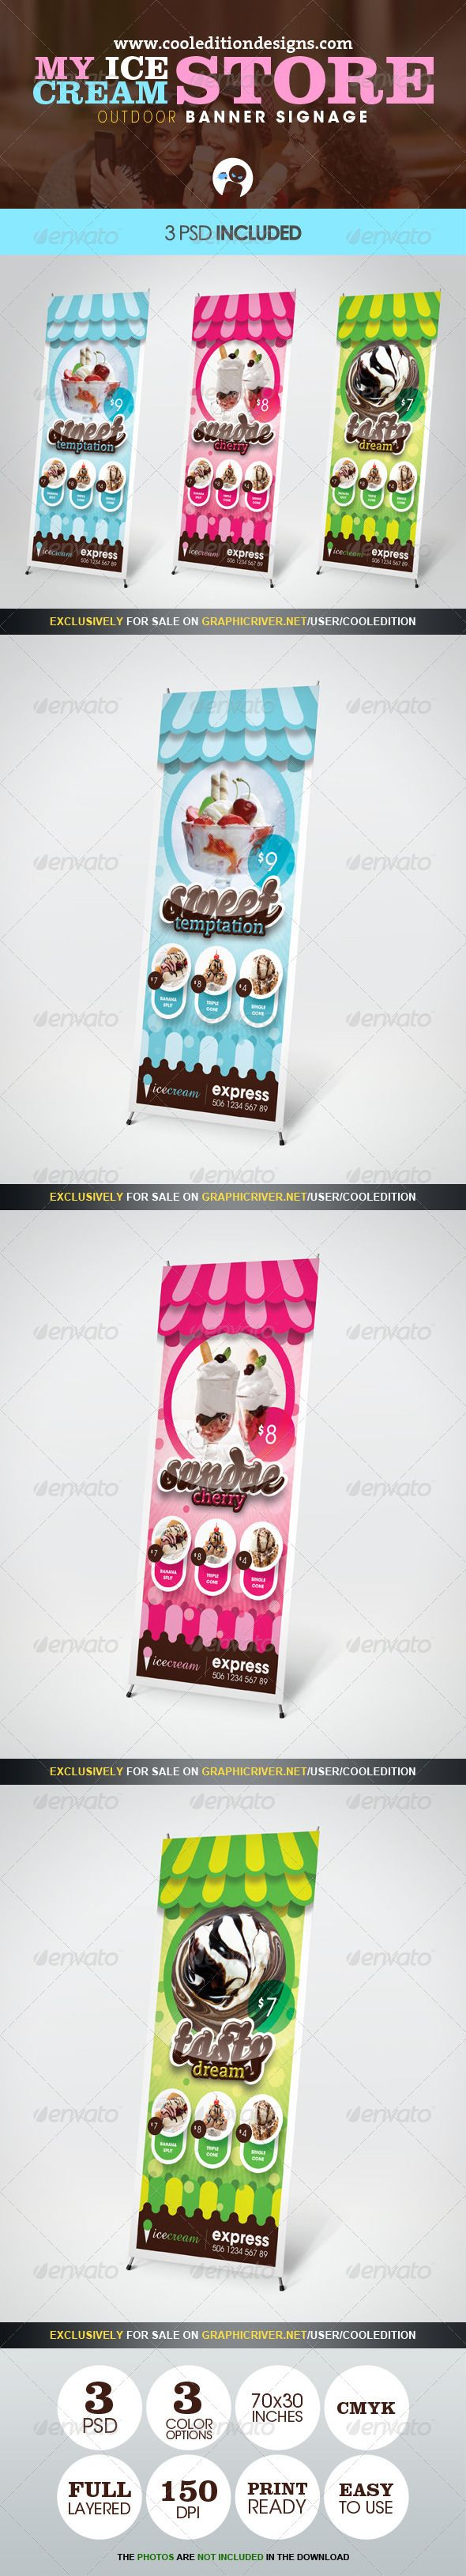 My Ice Cream Store - Outdoor #Banner Signage - #Signage Print Templates Download here: https://graphicriver.net/item/my-ice-cream-store-outdoor-banner-signage/2511855?ref=alena994